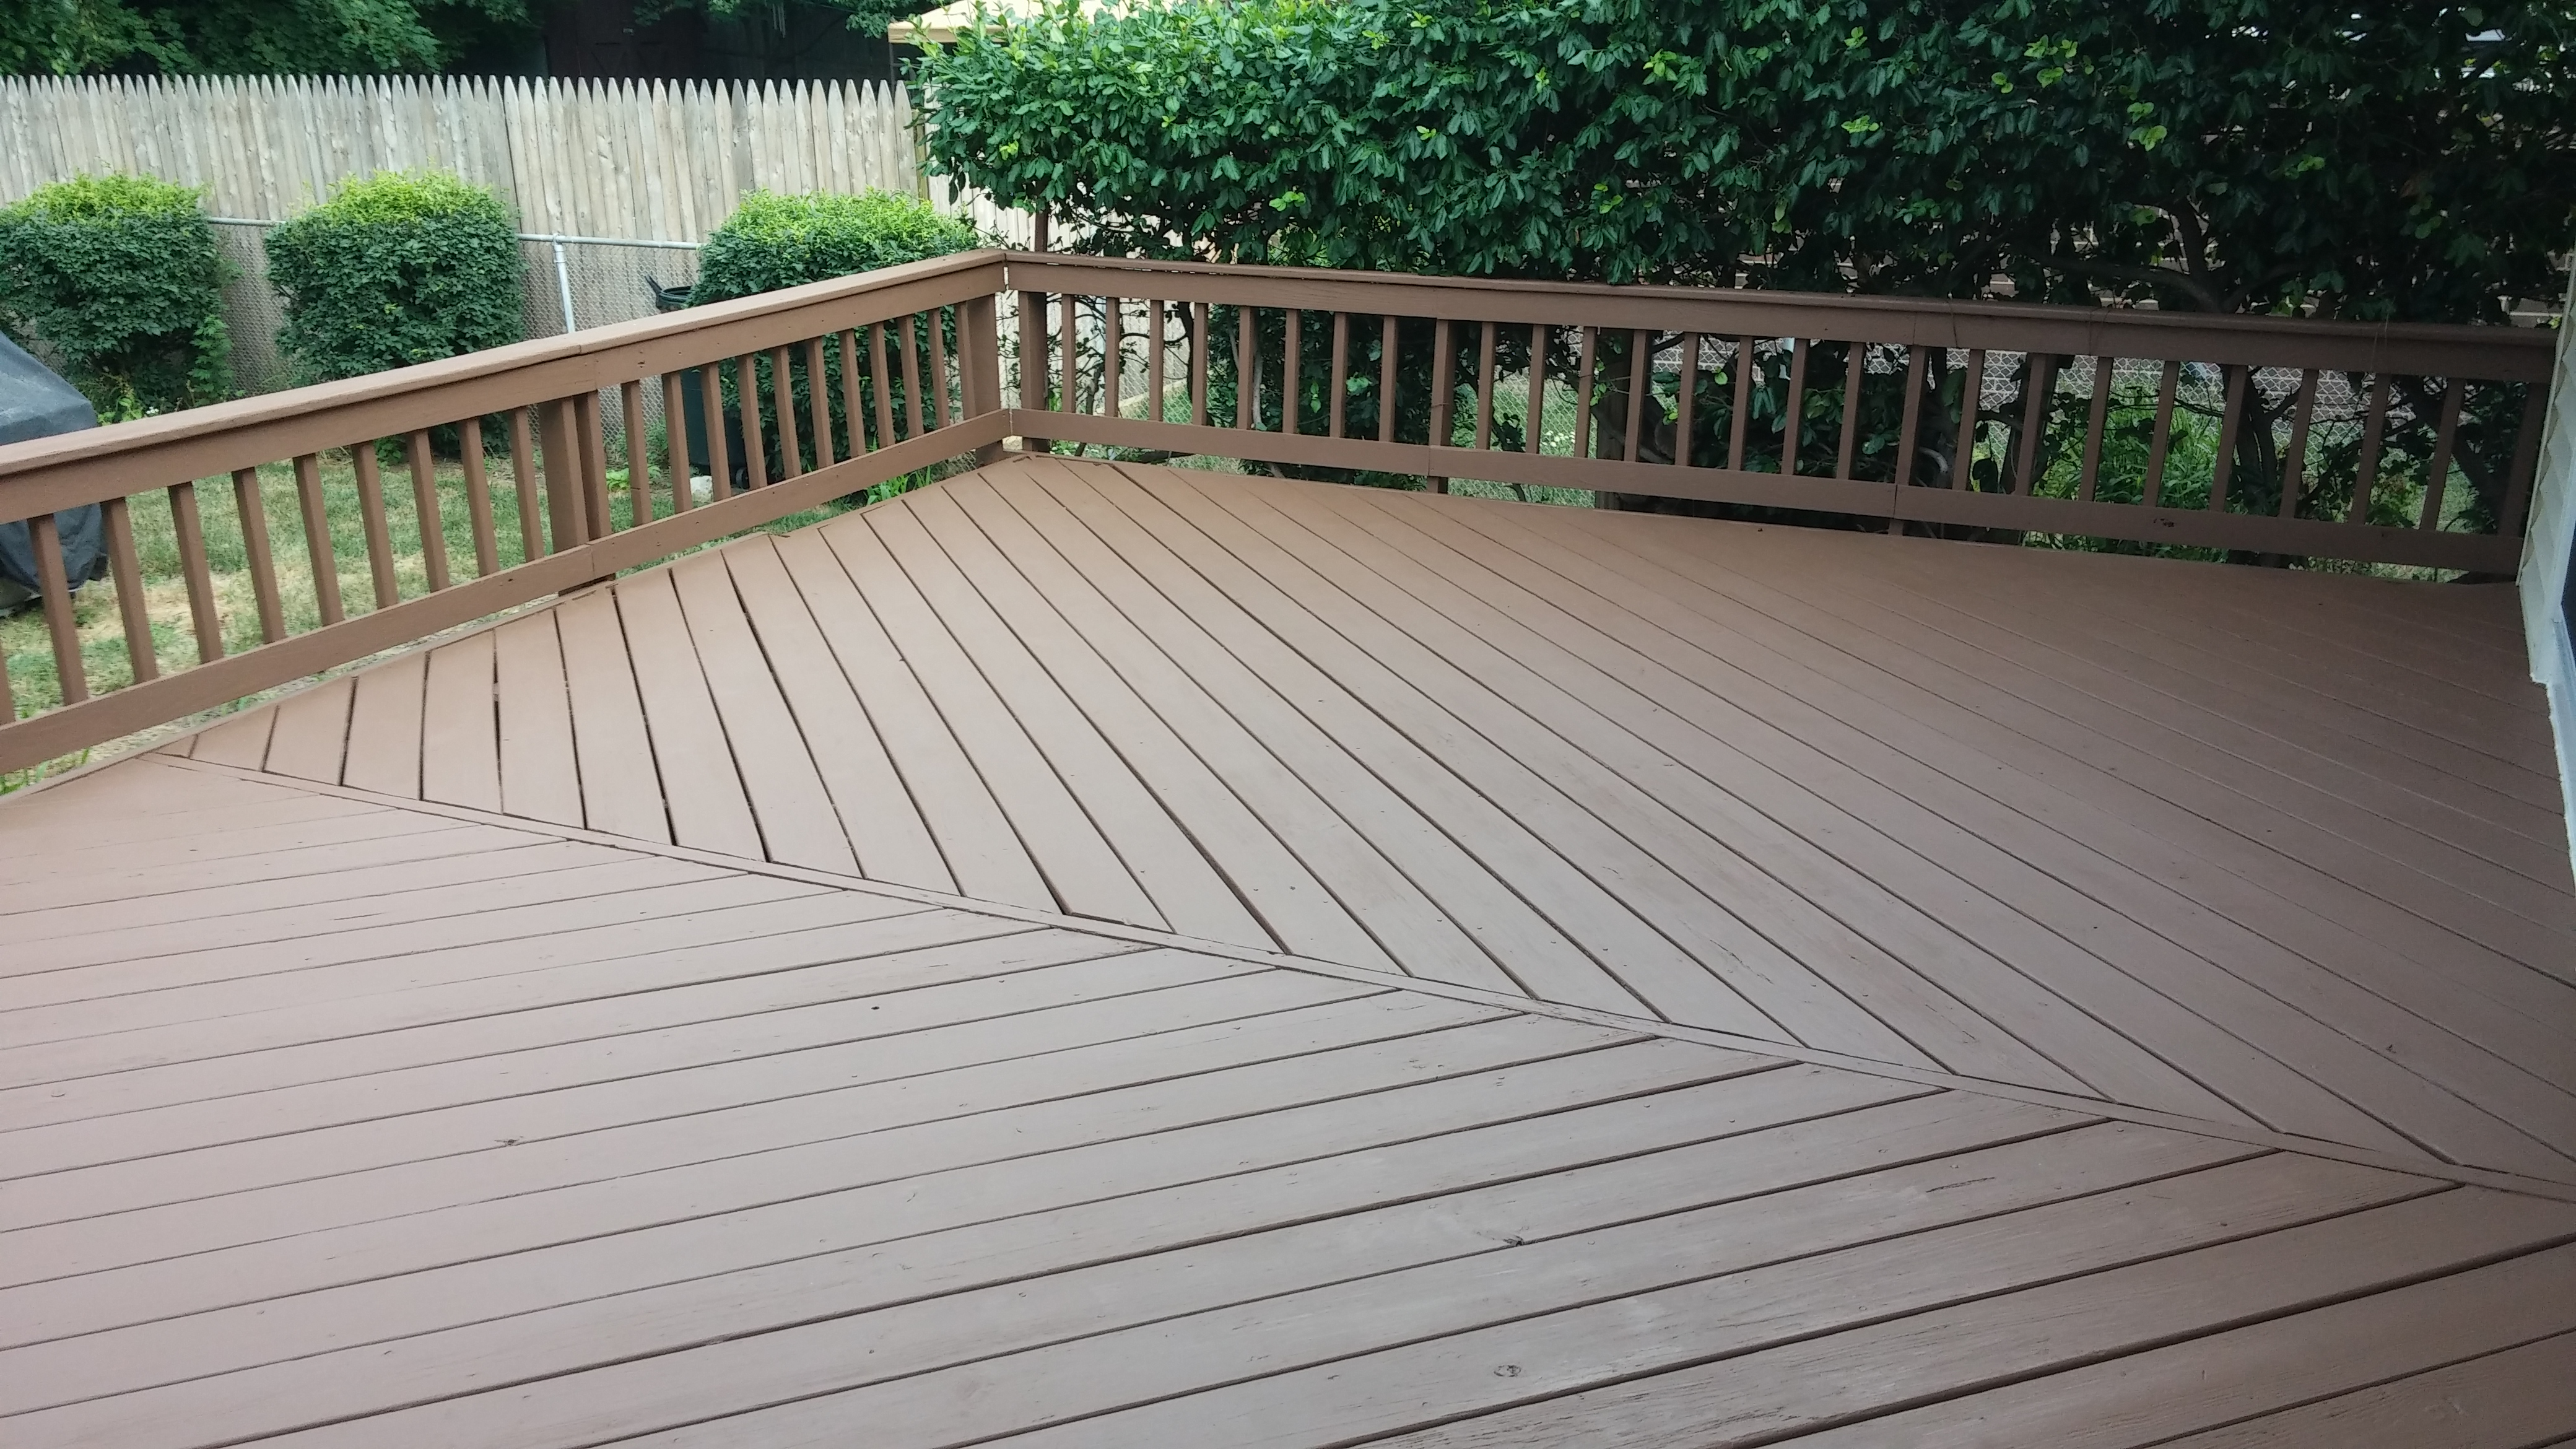 North Olmsted Deck Staining Service